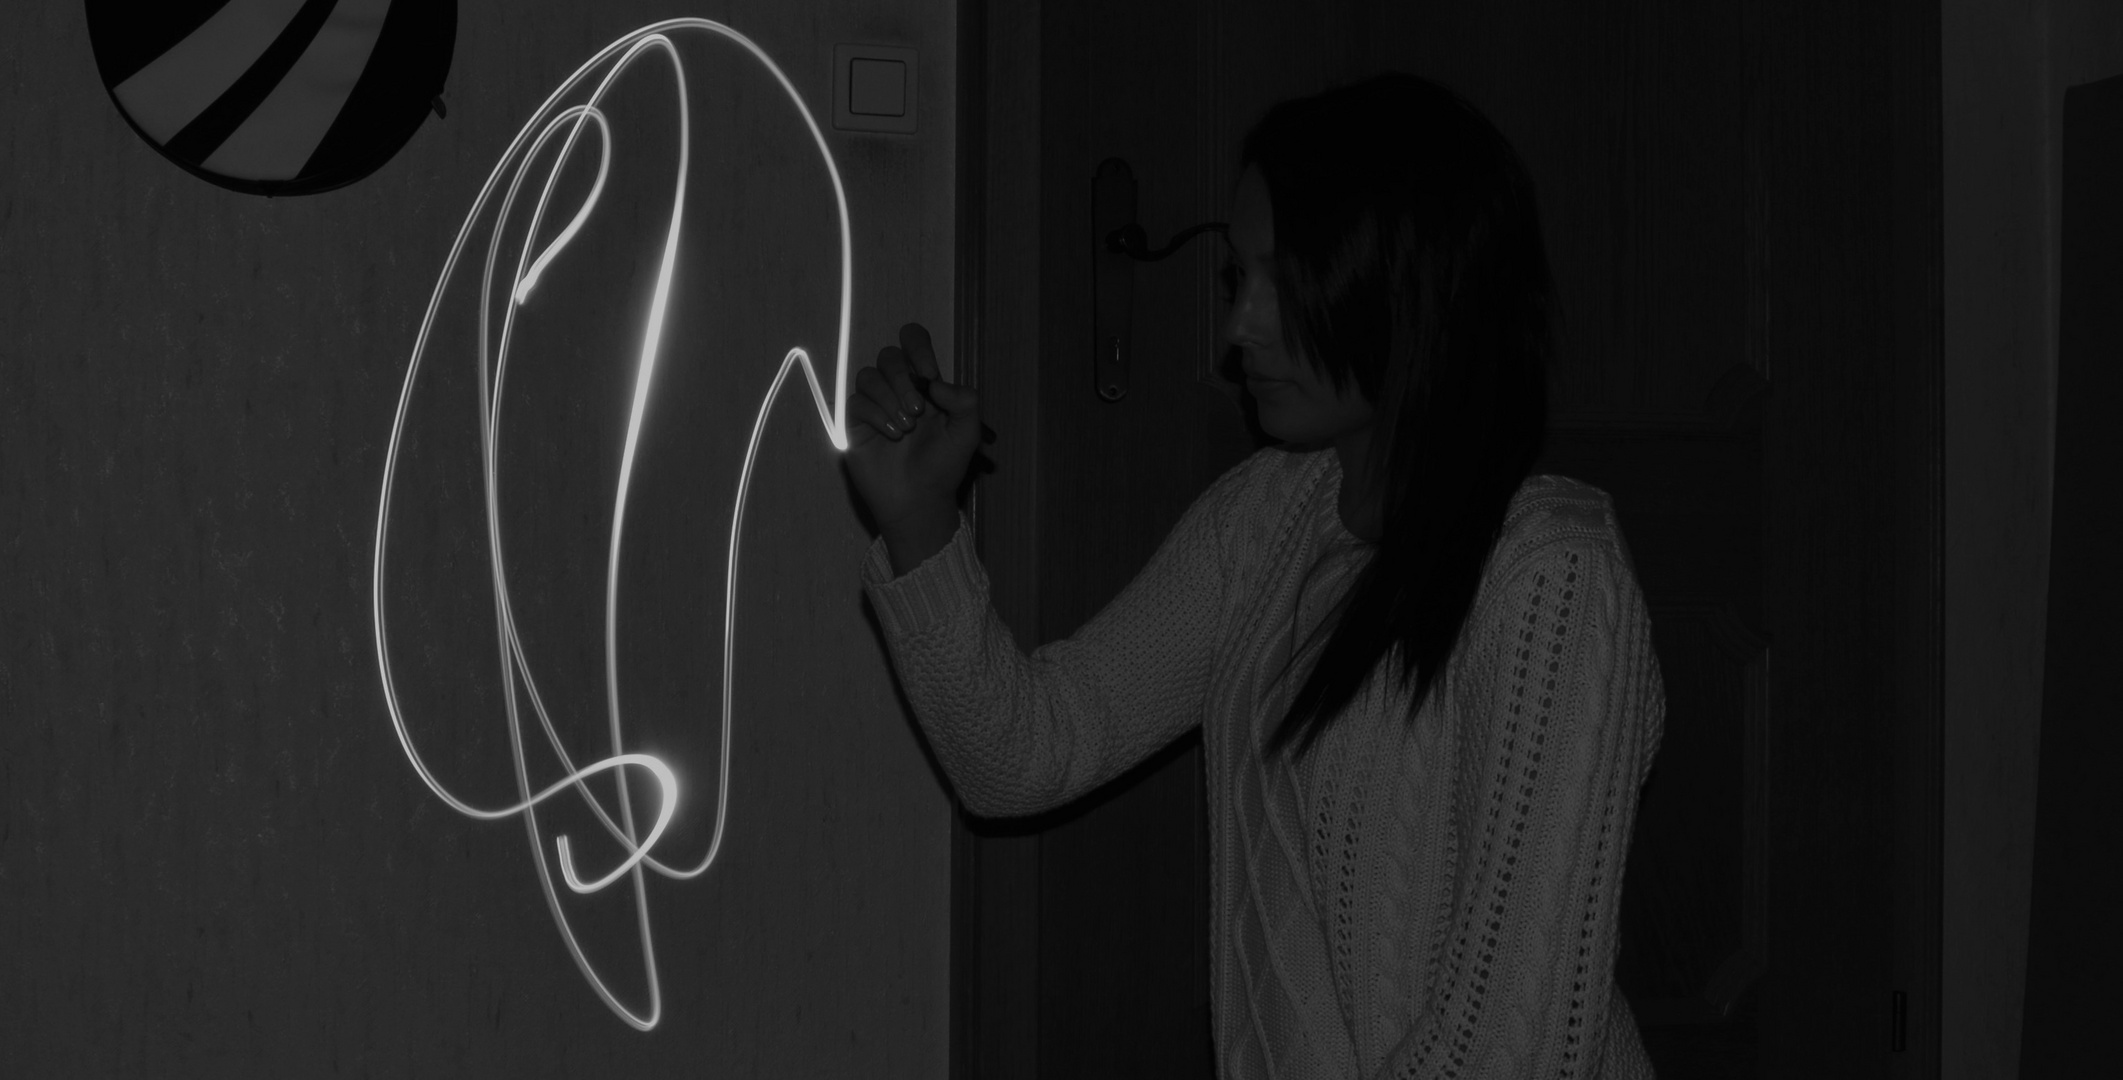 Light painting :-D